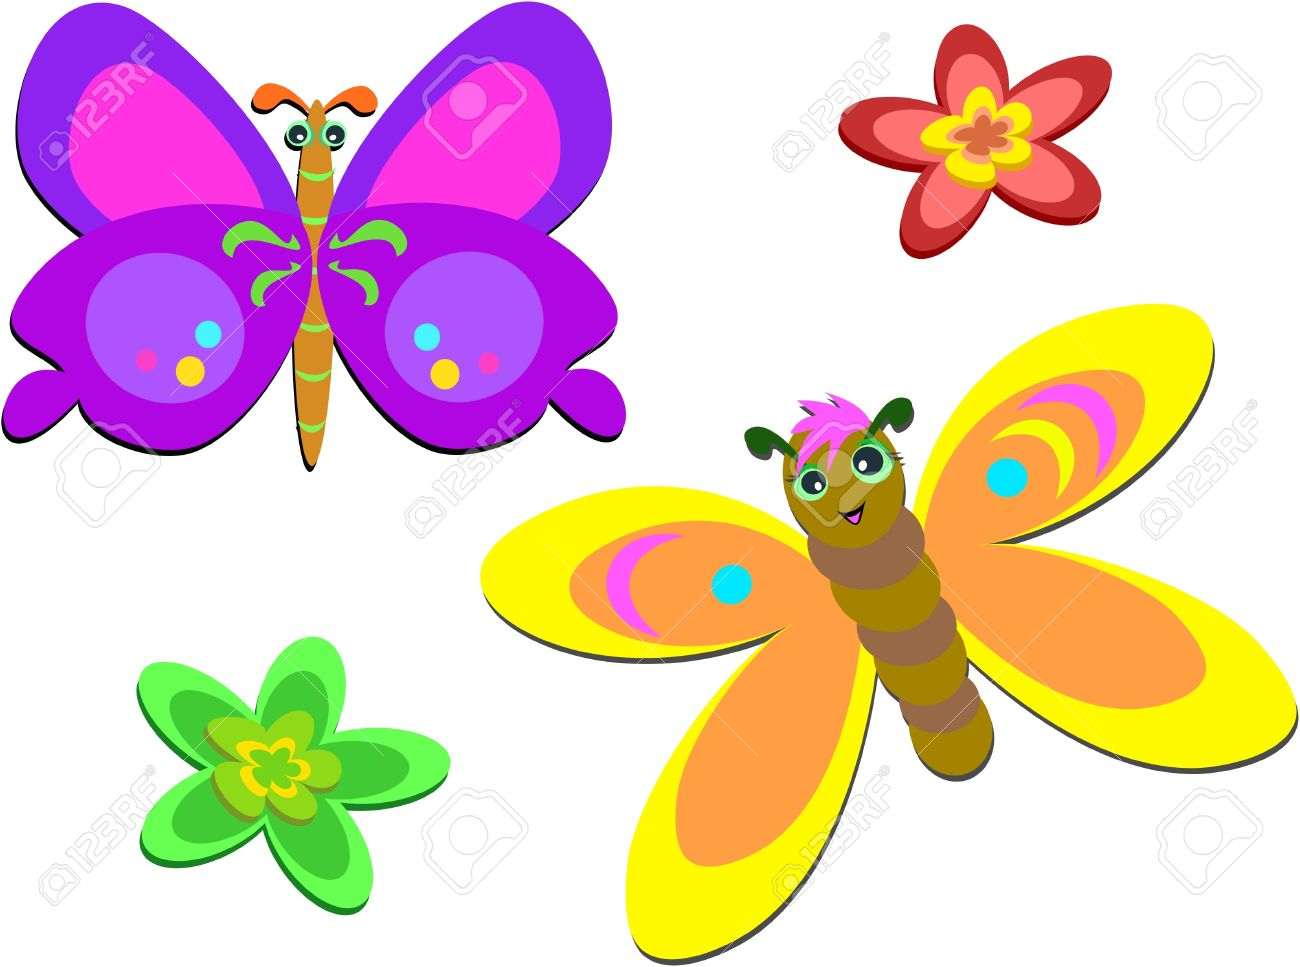 Two Cute Butterflies And Flowers Royalty Free Cliparts, Vectors ...